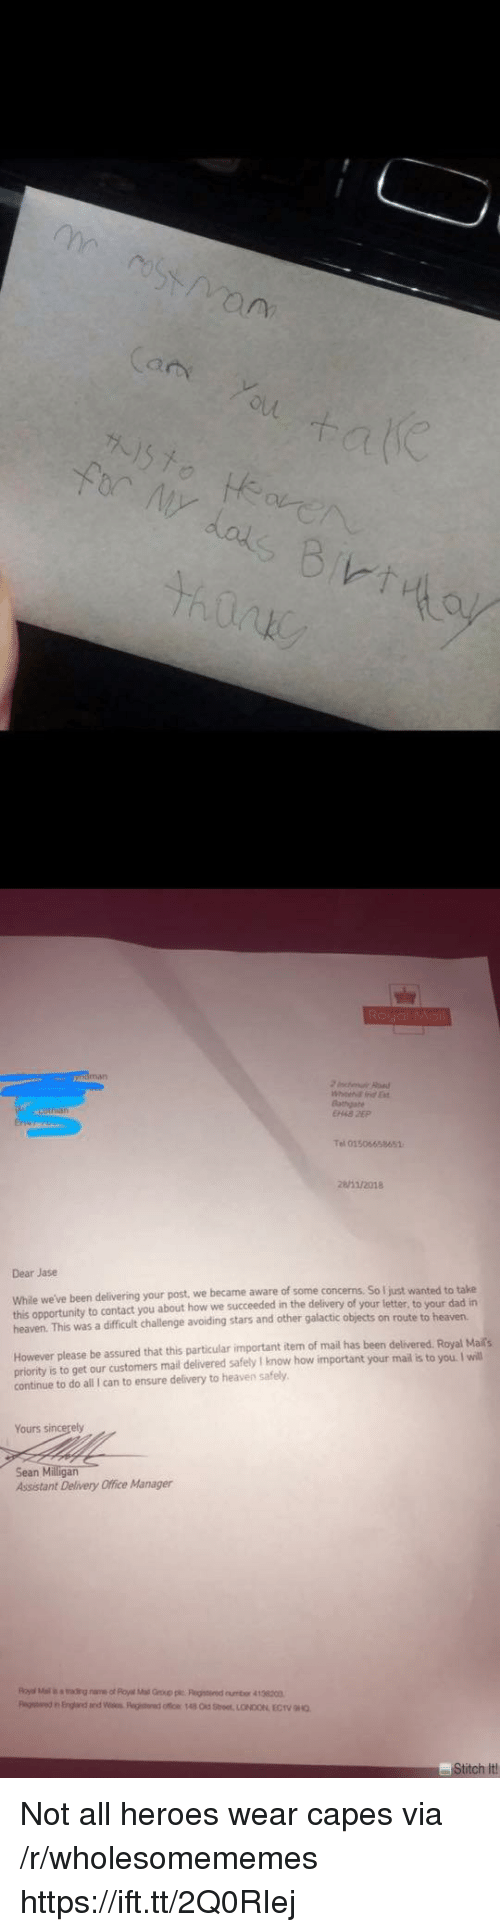 Dad, Heaven, and Ensure: (a  Bathgate  el 01506658651  /2018  Dear Jase  While we've been delivering your post we became aware of some concerns  this opportunity to contact you about how we succeeded in the delivery of your letter, to your dad in  heaven. This was a difficult challenge avoiding stars and other galactic objects on route to heaven  So I just wanted to take  However please be assured that this particular important iten of mail has been delivered. Royal Maits  priority is to get our customers mail delivered safely I know how important your mail is to you. I will  continue to do all I can to ensure delivery to heaven safely  Yours s  Sean Milligan  Assistant Delivery Office Manager  titch It Not all heroes wear capes via /r/wholesomememes https://ift.tt/2Q0RIej